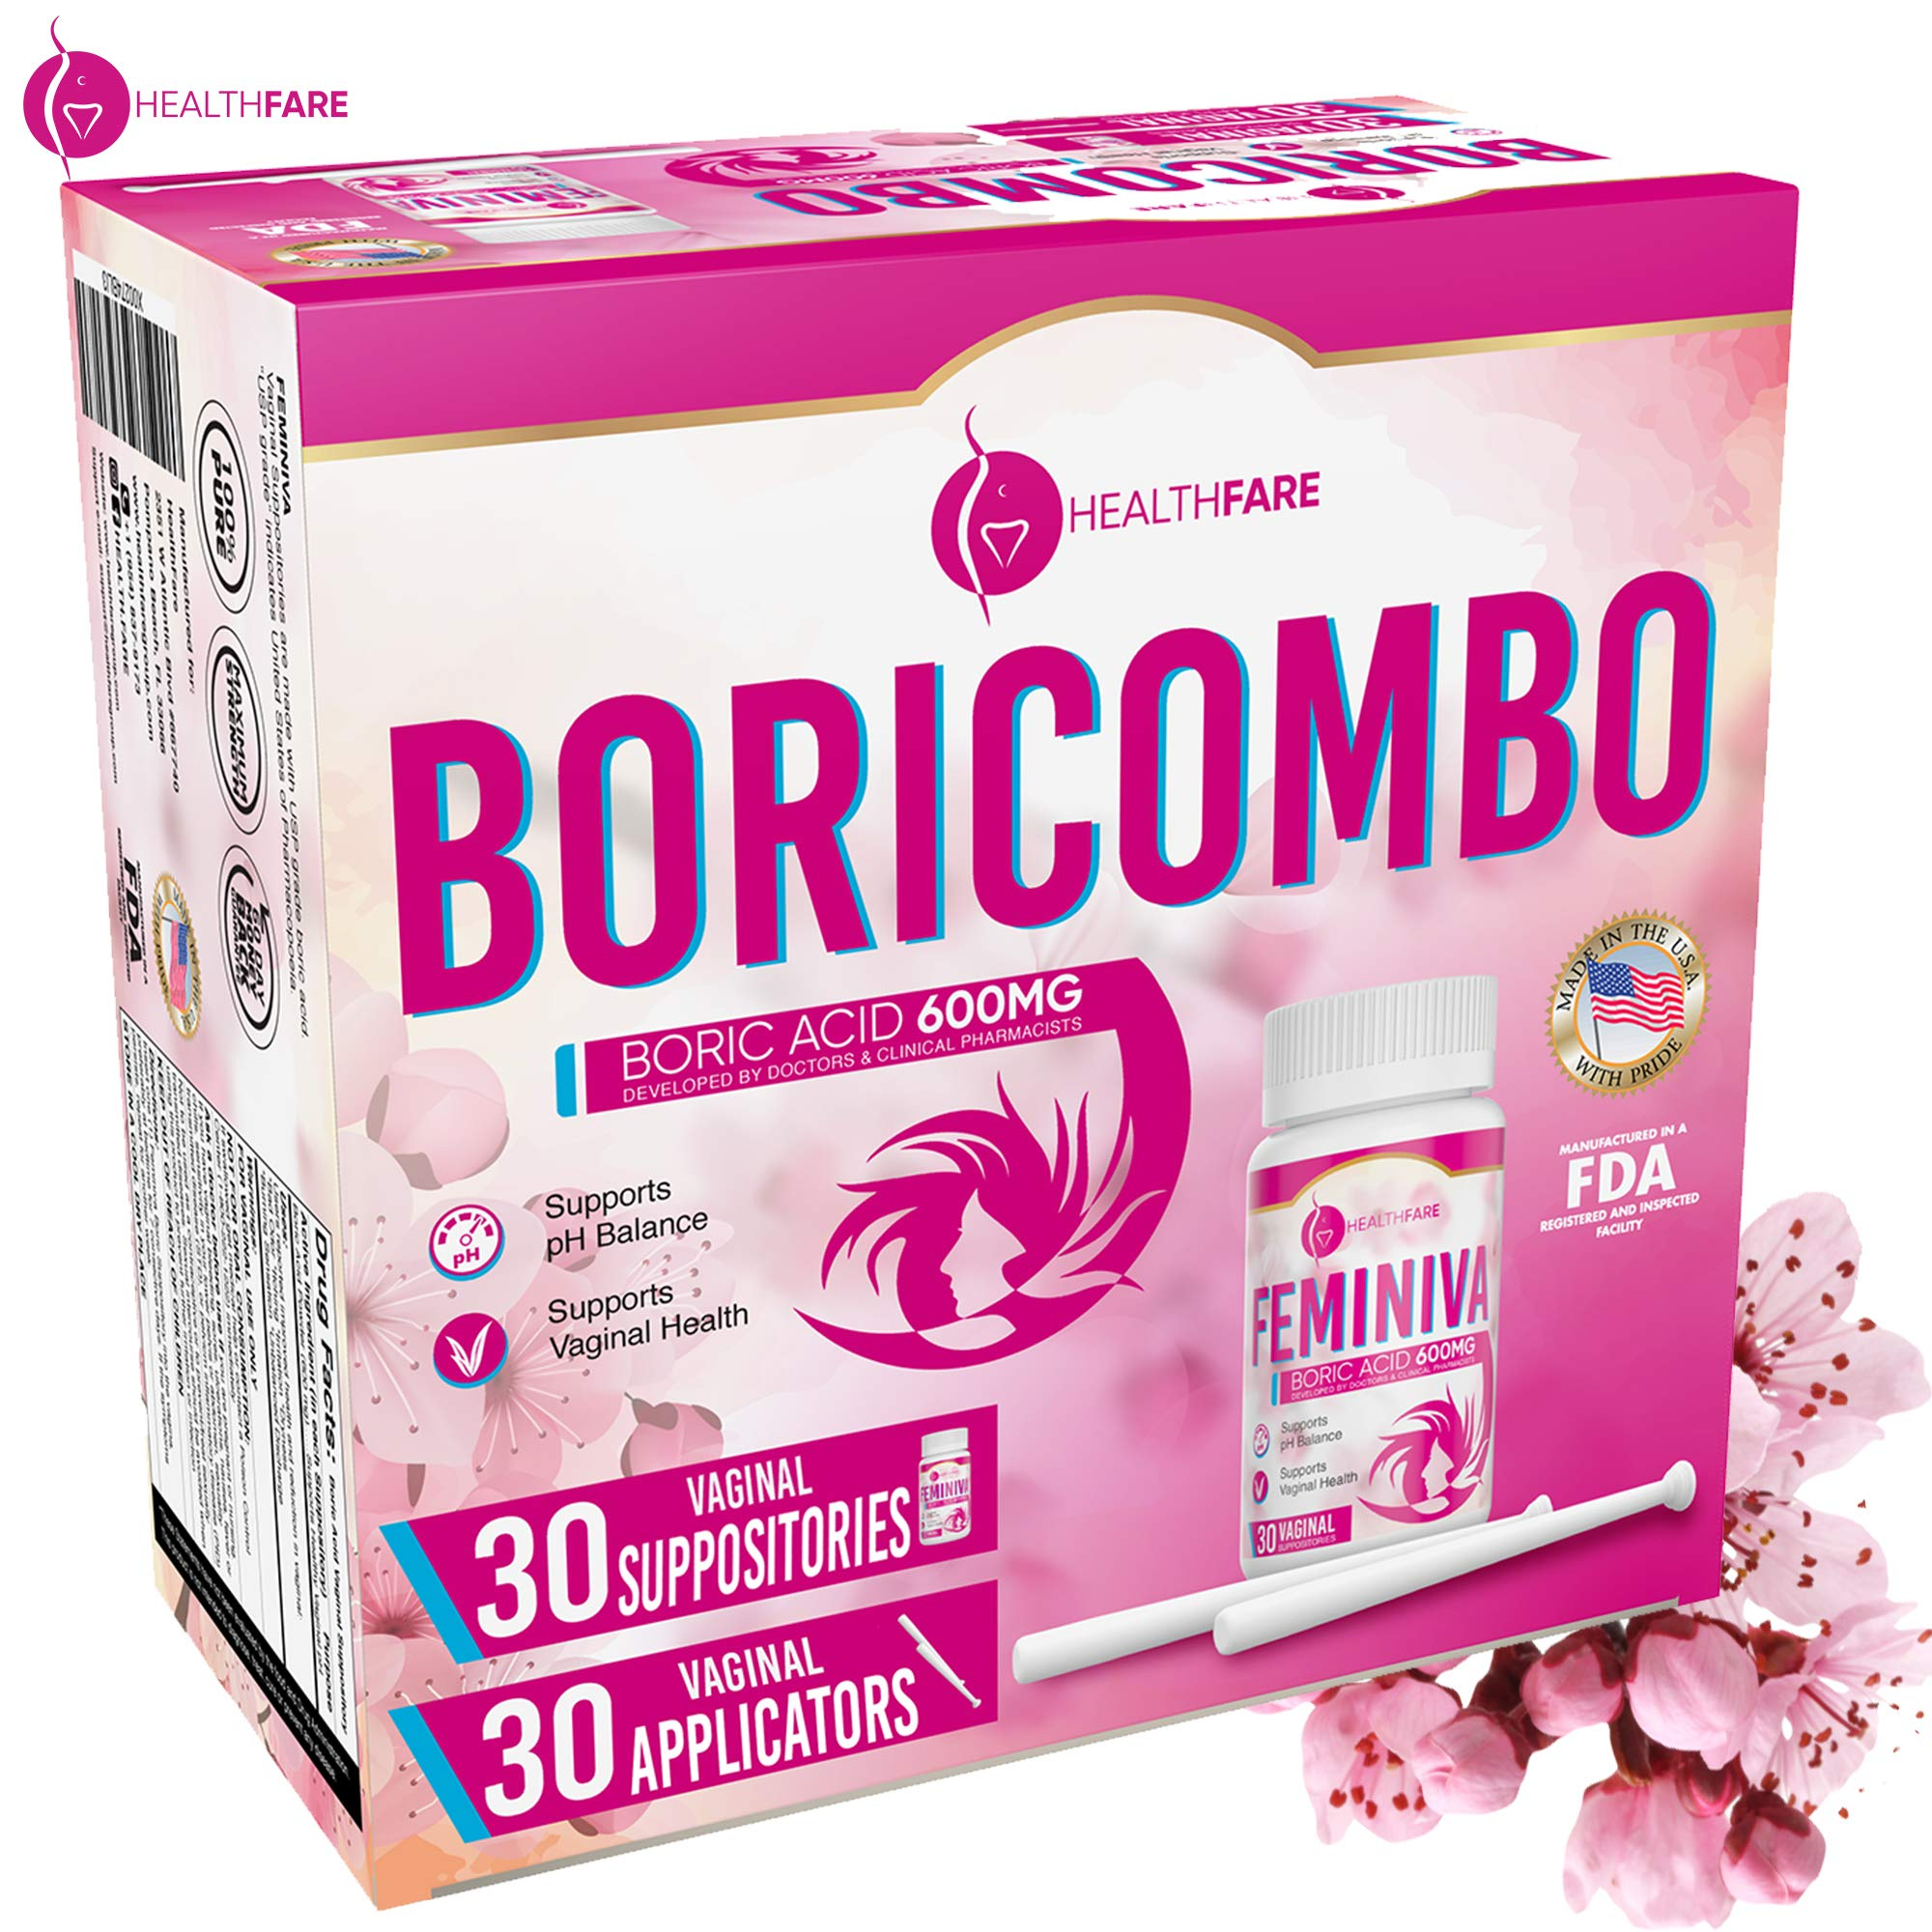 BoriCombo Boric Acid Vaginal Suppositories 600mg 30Count w/ 30 Vaginal Applicators - Feminine Hygiene Kit - pH Balance for Women, Feminine Care - Made in USA